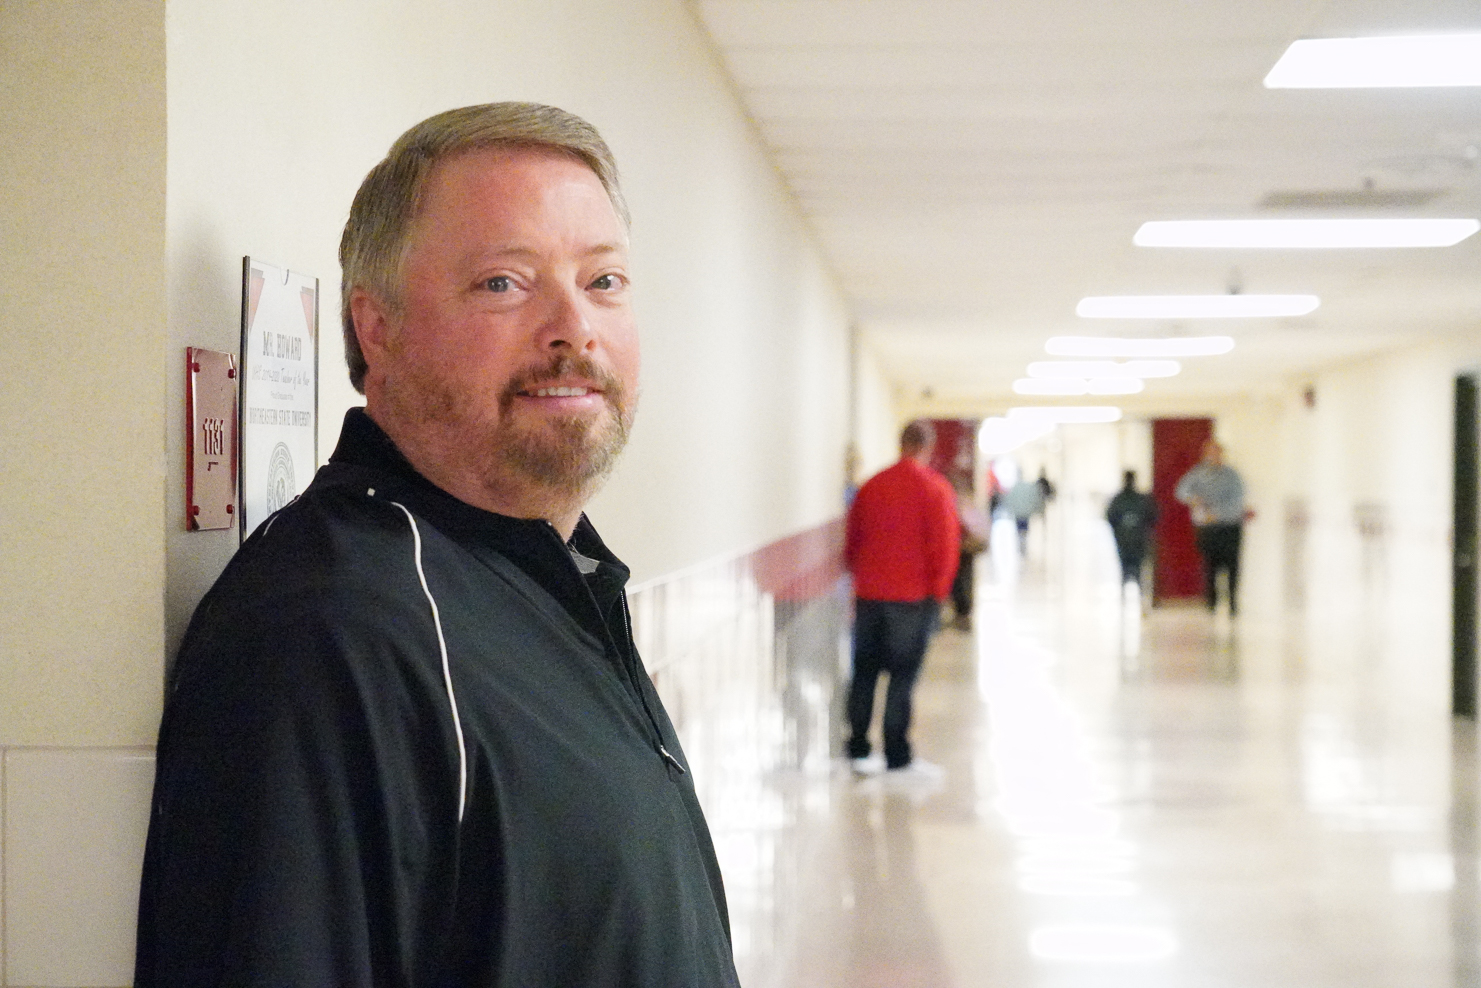 """High School – Glenn Howard, Business Business teacher Glenn Howard has been named the Union High School Teacher of the Year for 2019-2020. Howard has taught a total of 32 years, beginning his Union career during the 1993-1994 school year (27 years!). """"From a young age, I discovered that the closest relationships I had in school were with my teachers,"""" Howard said. """"I felt I could go to them for good advice if I had a problem. They were some of the most passionate and caring people that I have known and I saw how lives could be transformed by a caring teacher.  If I became a teacher, I felt there would be more opportunities for me to form relationships with young people and wanted to be the person that young people could turn to when they needed advise.  My entire educational career has been touched by my colleagues. I feel that I am living a legacy, walking the path that these educators have laid down before me.  Therefore, I wanted to be an educator, an example, a mentor and confidant, to make a difference in the lives of as many students and teachers as possible.  I estimate that I have directly impacted over 6000 students and through mentoring teachers, indirectly impacted thousands more students during my 32 year career. I feel I am making a difference and honored to be considered one of the best by my colleagues, an effective teacher.  What a legacy to continue!"""" Howard said he enjoys teaching technology. """"I enjoy teaching technology courses because I am fascinated by our rapidly changing digital age.  I feel there is no better reward than witnessing student engagement with technology and excitement as they grasp a concept for the first time.  After reading, writing and arithmetic, it is vital for students to have a strong digital foundation in the current job market.  Therefore, I am highly motivated to share the emerging technologies of today's digital age that are vital to student's success during college and career. """"  Educational Background: •Associates de"""